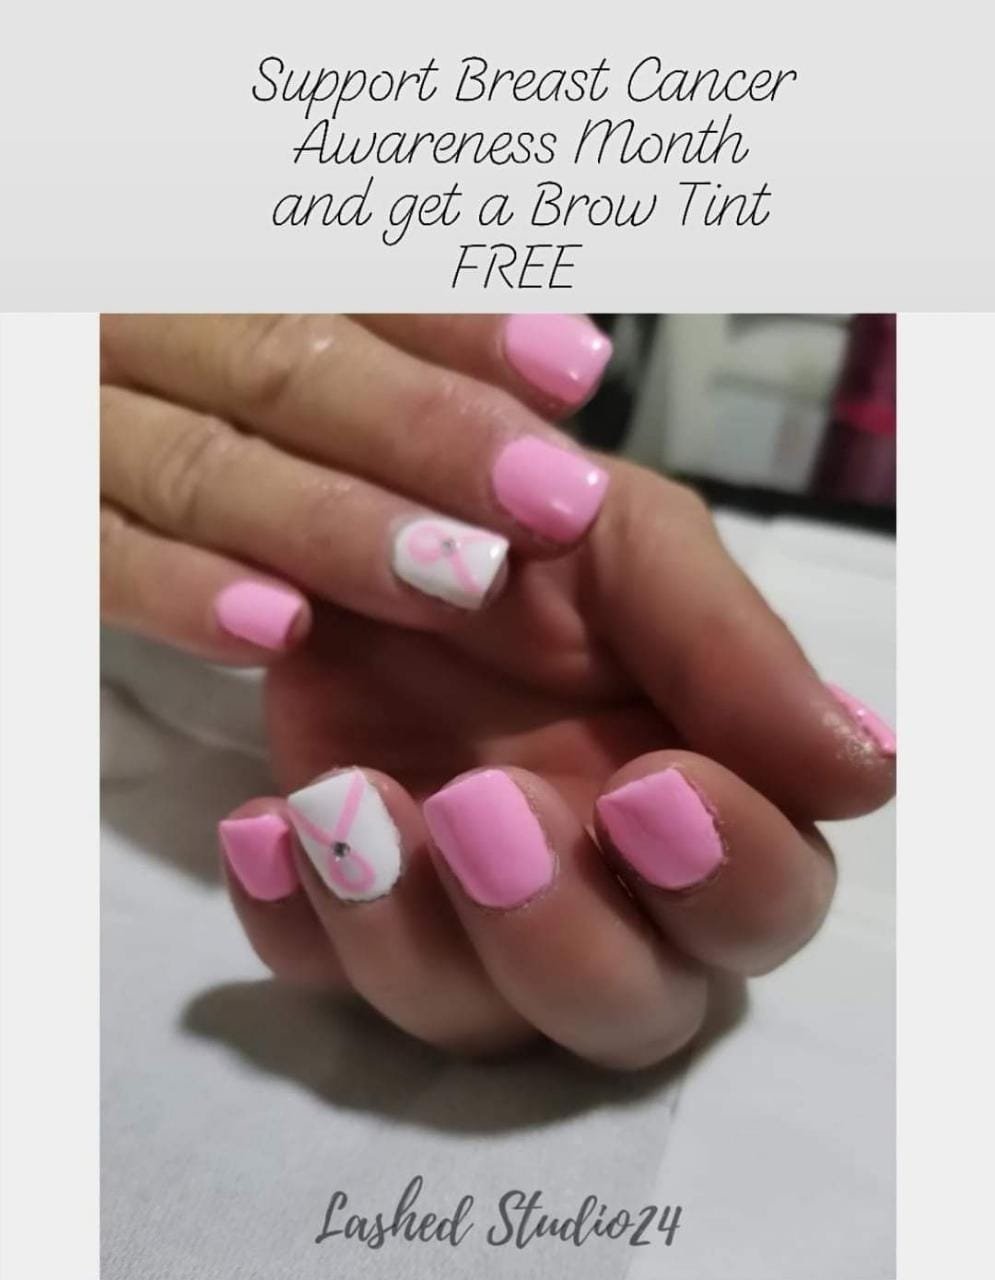 NAIL ENHANCEMENT PROMOTION